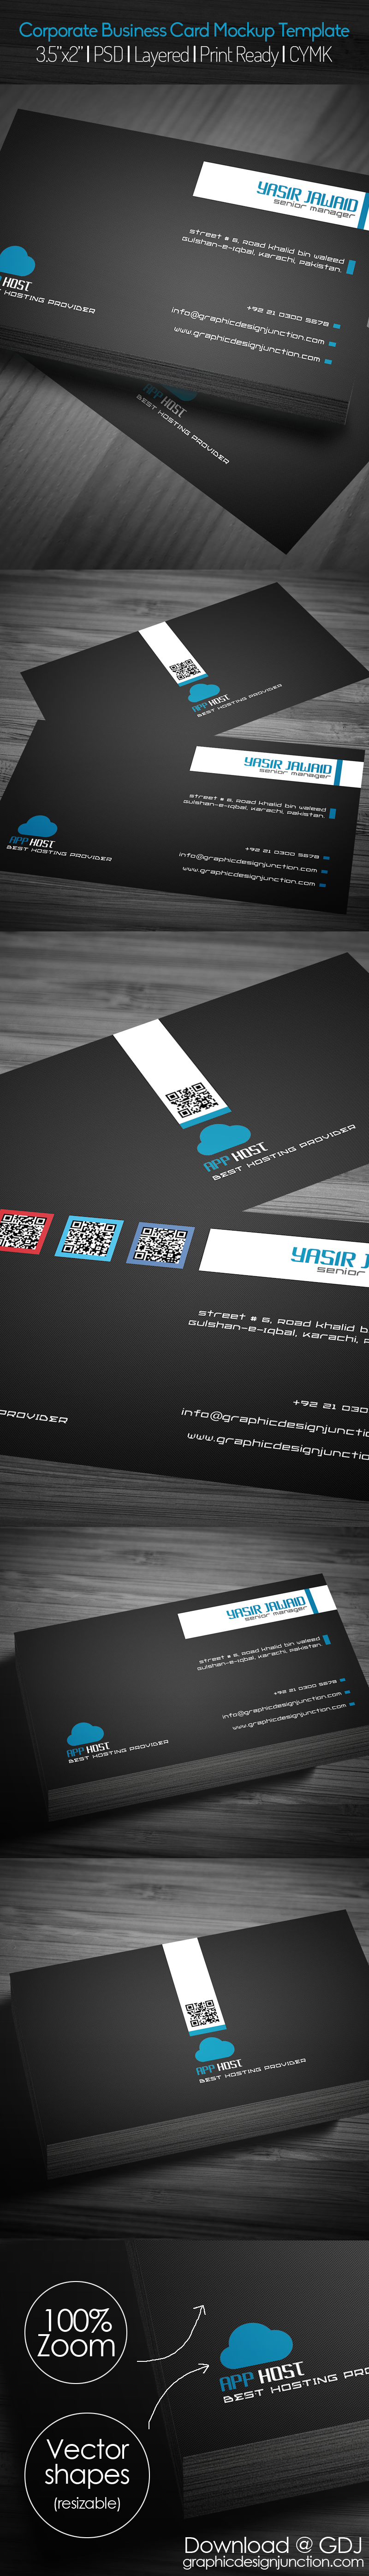 free corporate business card mockup psd freebies